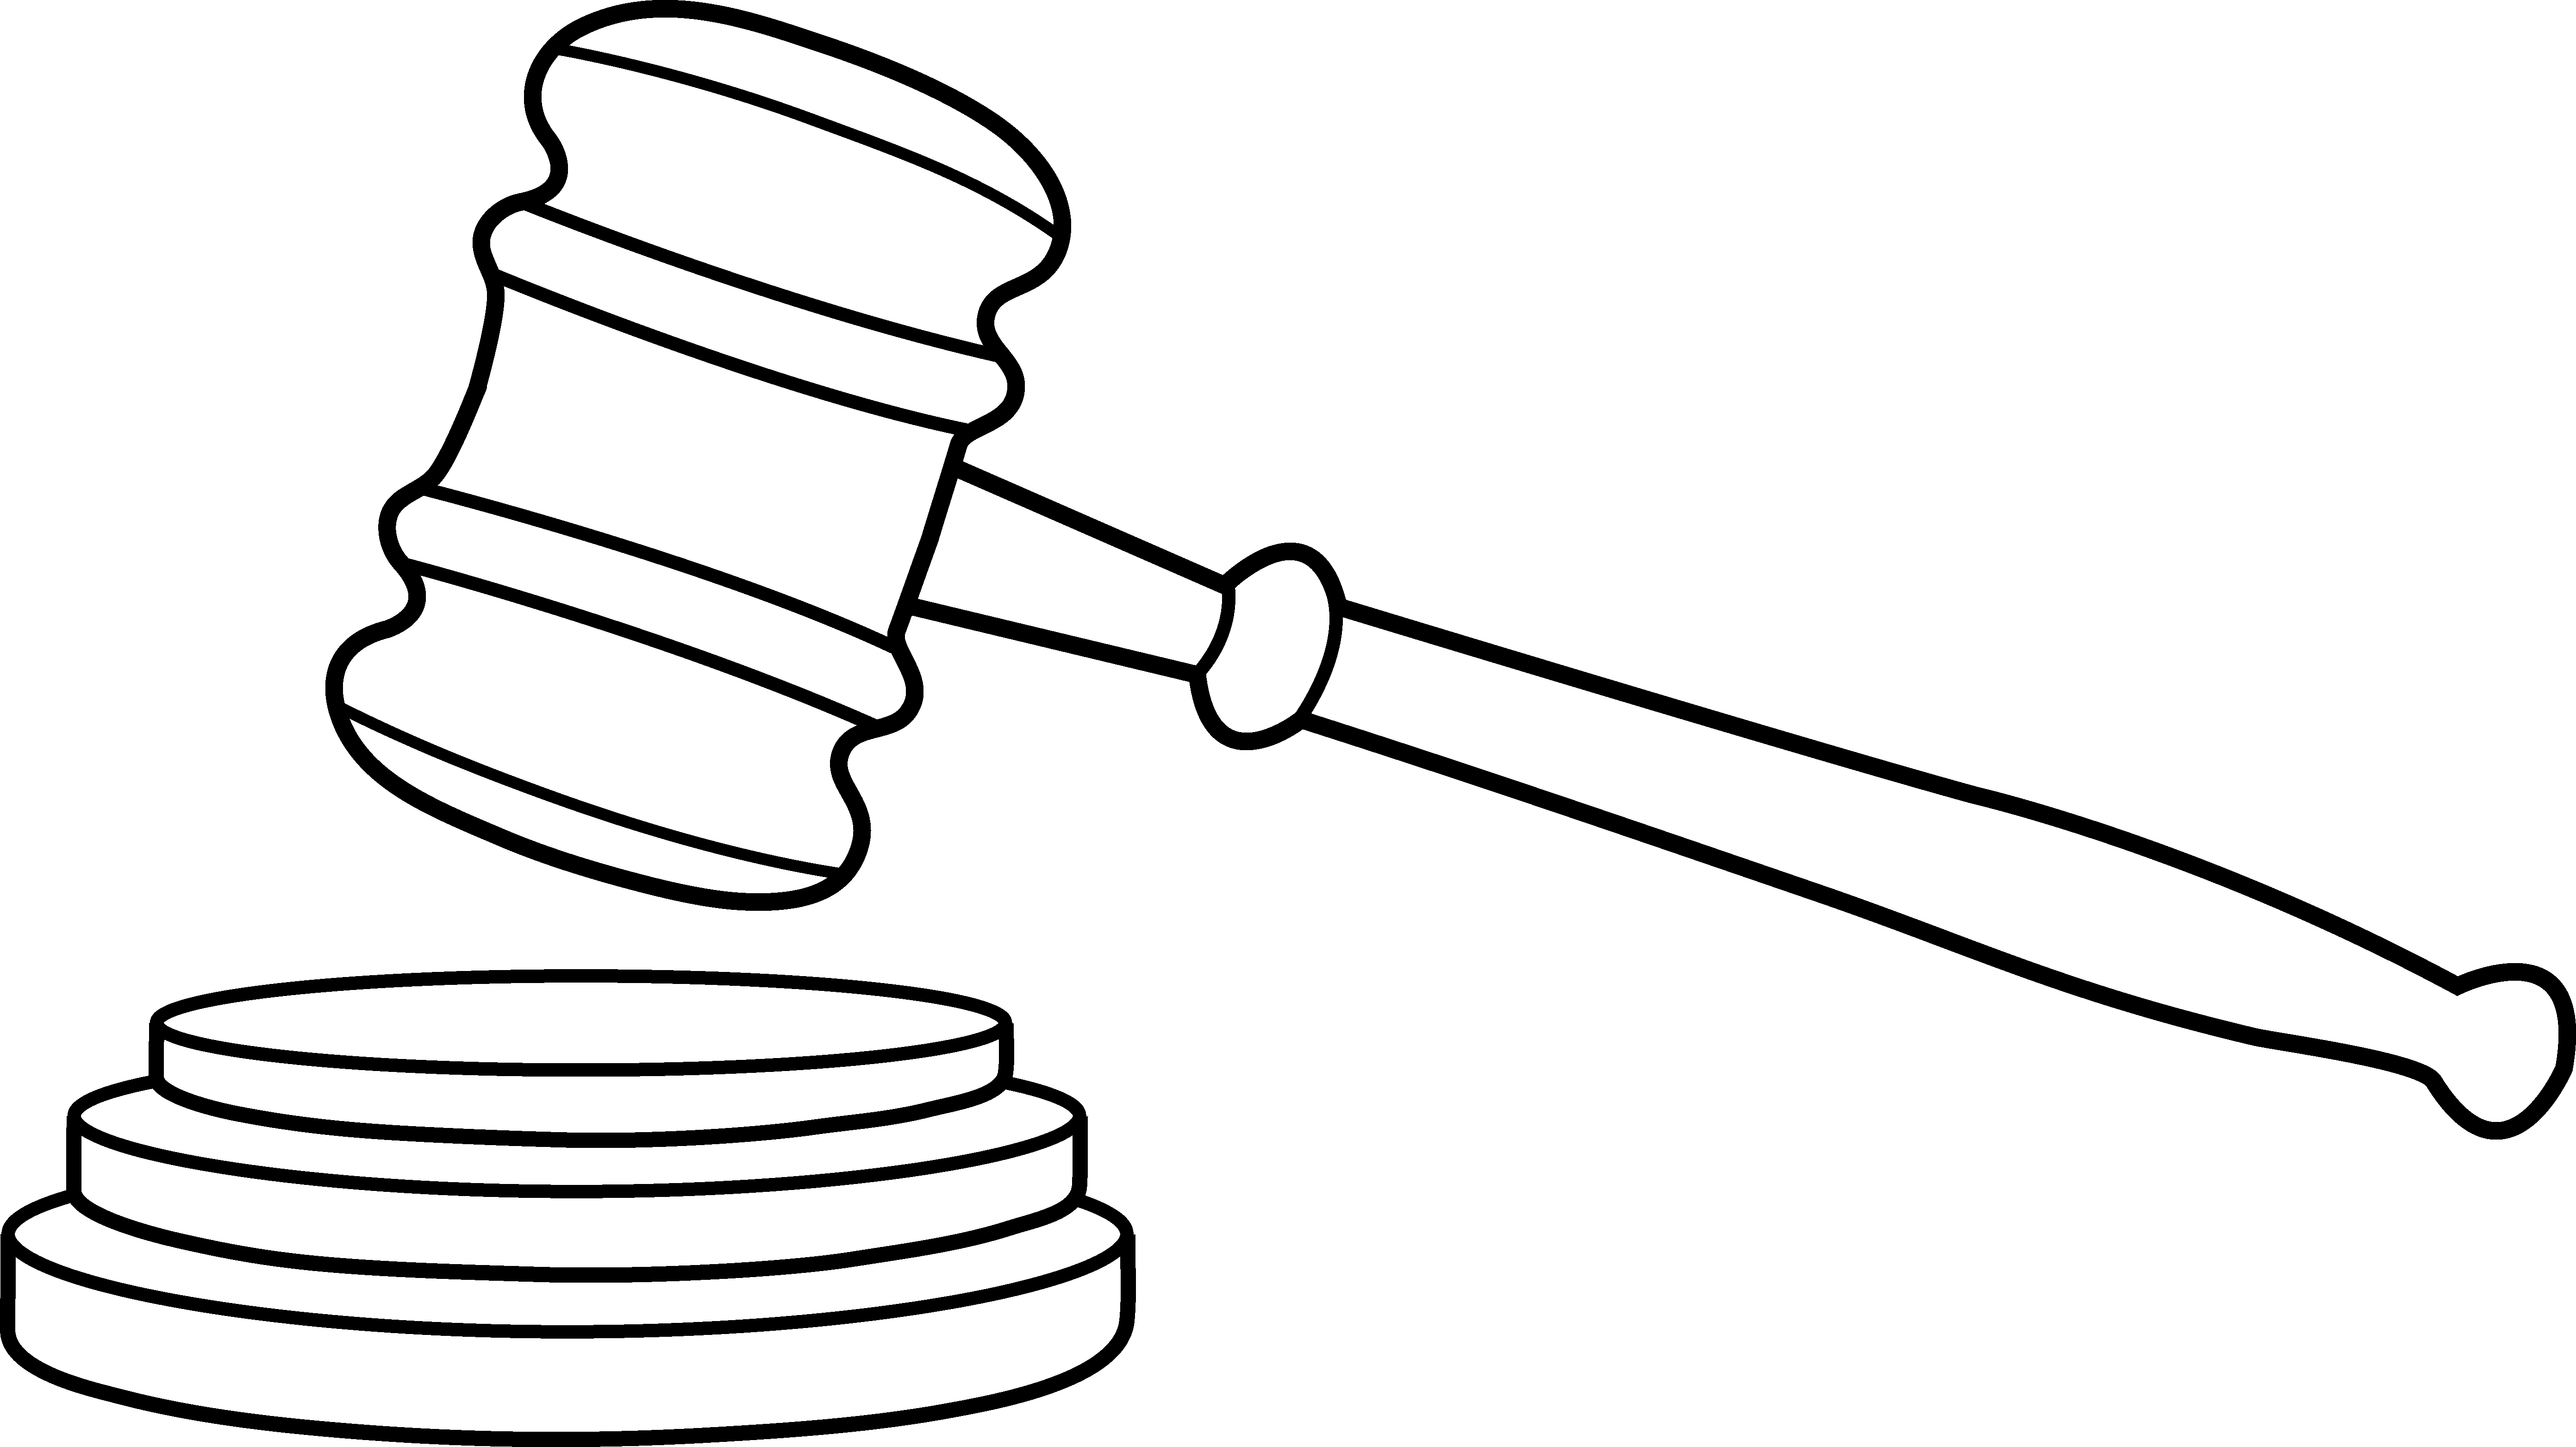 Court Gavel Line Art - Free Clip Art